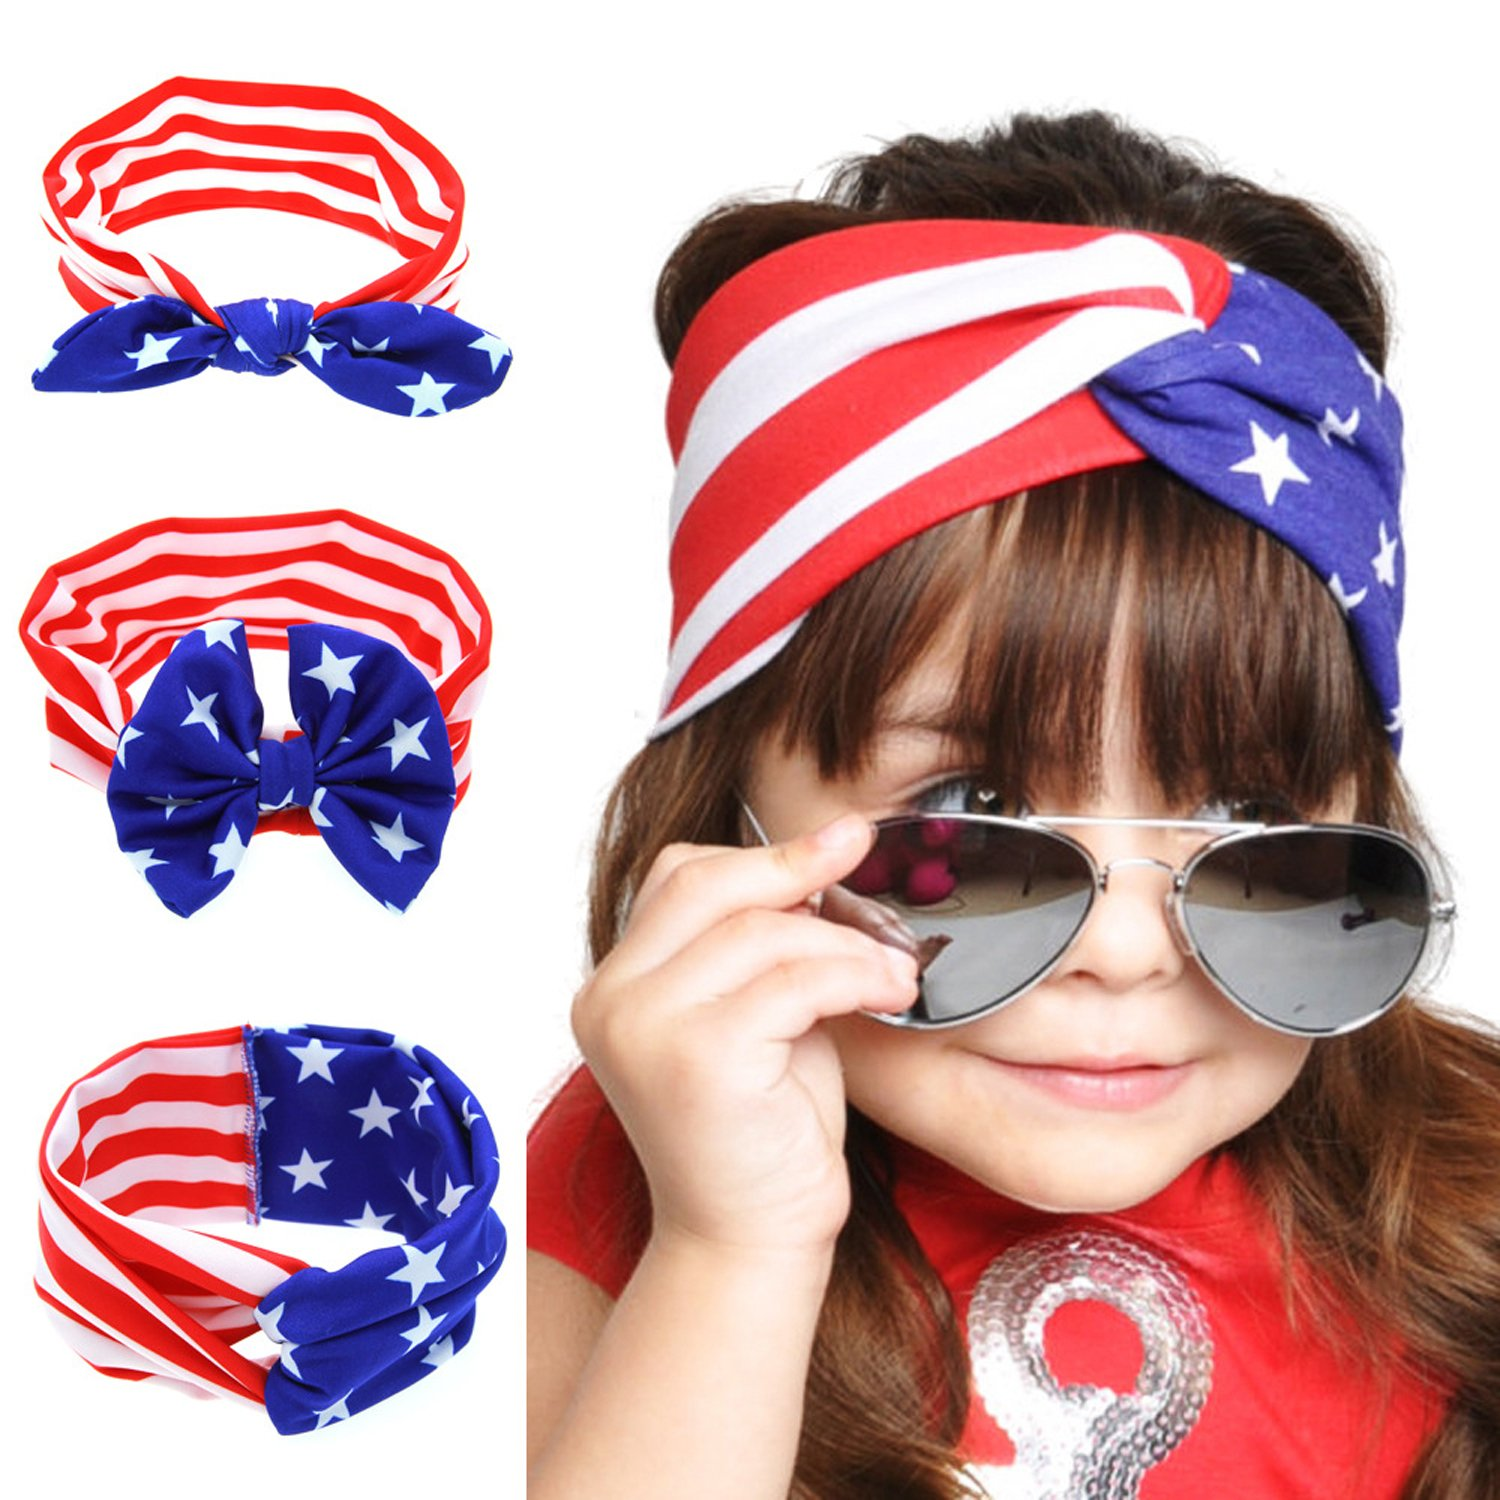 American US Flag Bandana Headband - Show Your American Pride - Bandana Headband US Bandana USA Flag